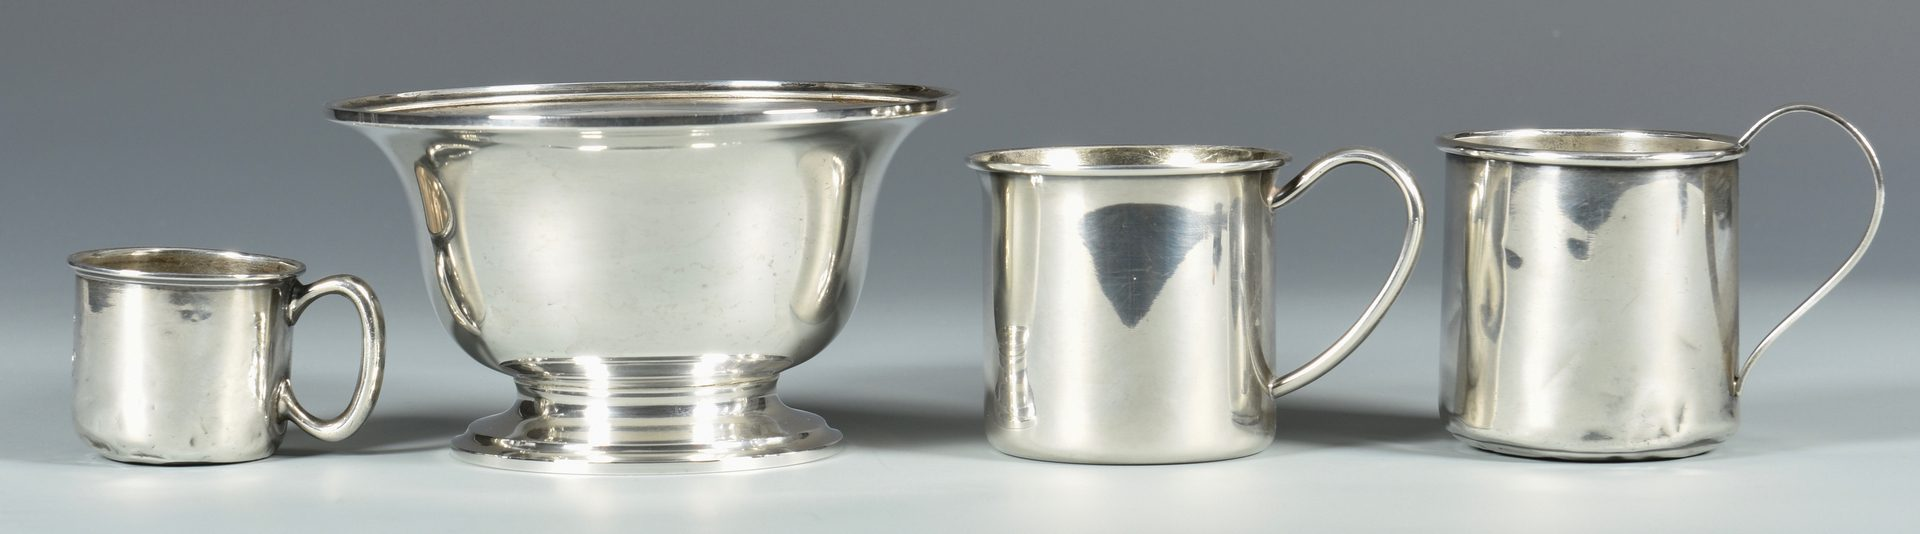 Lot 850: 11 pcs Sterling Silver Table Holloware